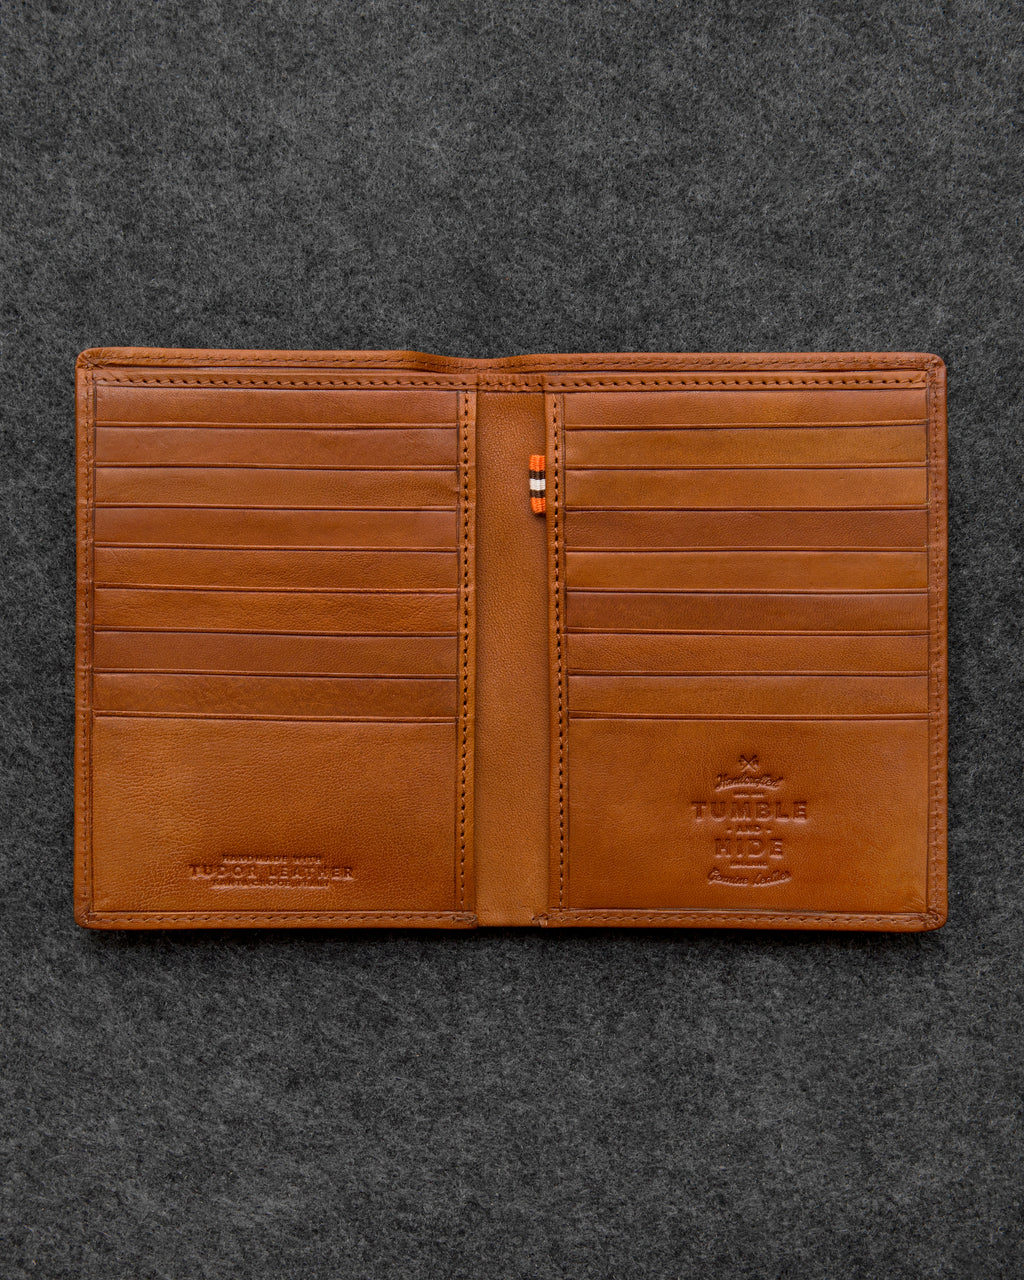 Tan Tudor Leather Traditional Jacket Wallet a